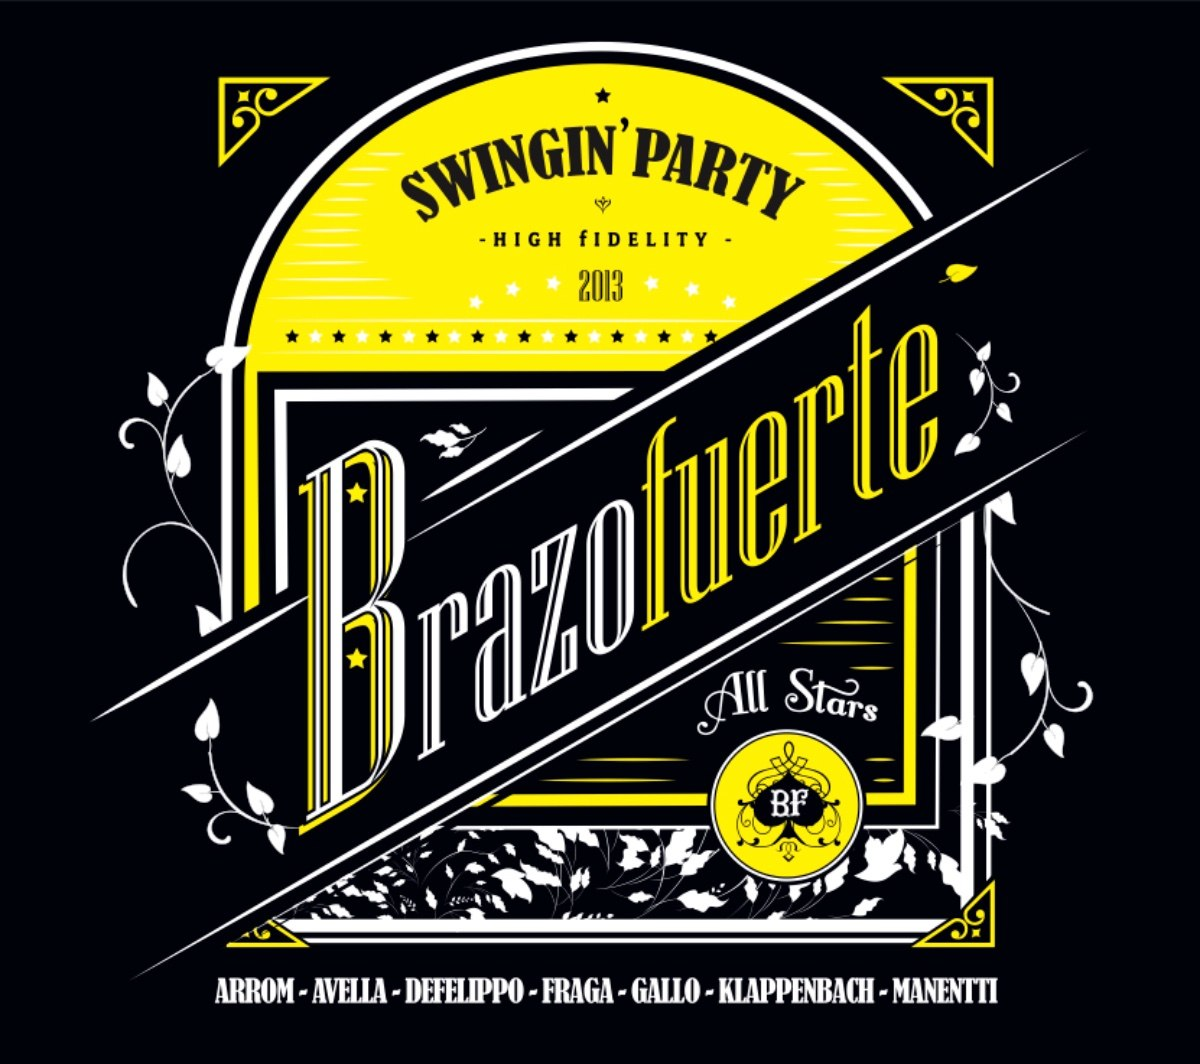 Orquesta Brazofuerte  - Pen Drive Swingin' Party